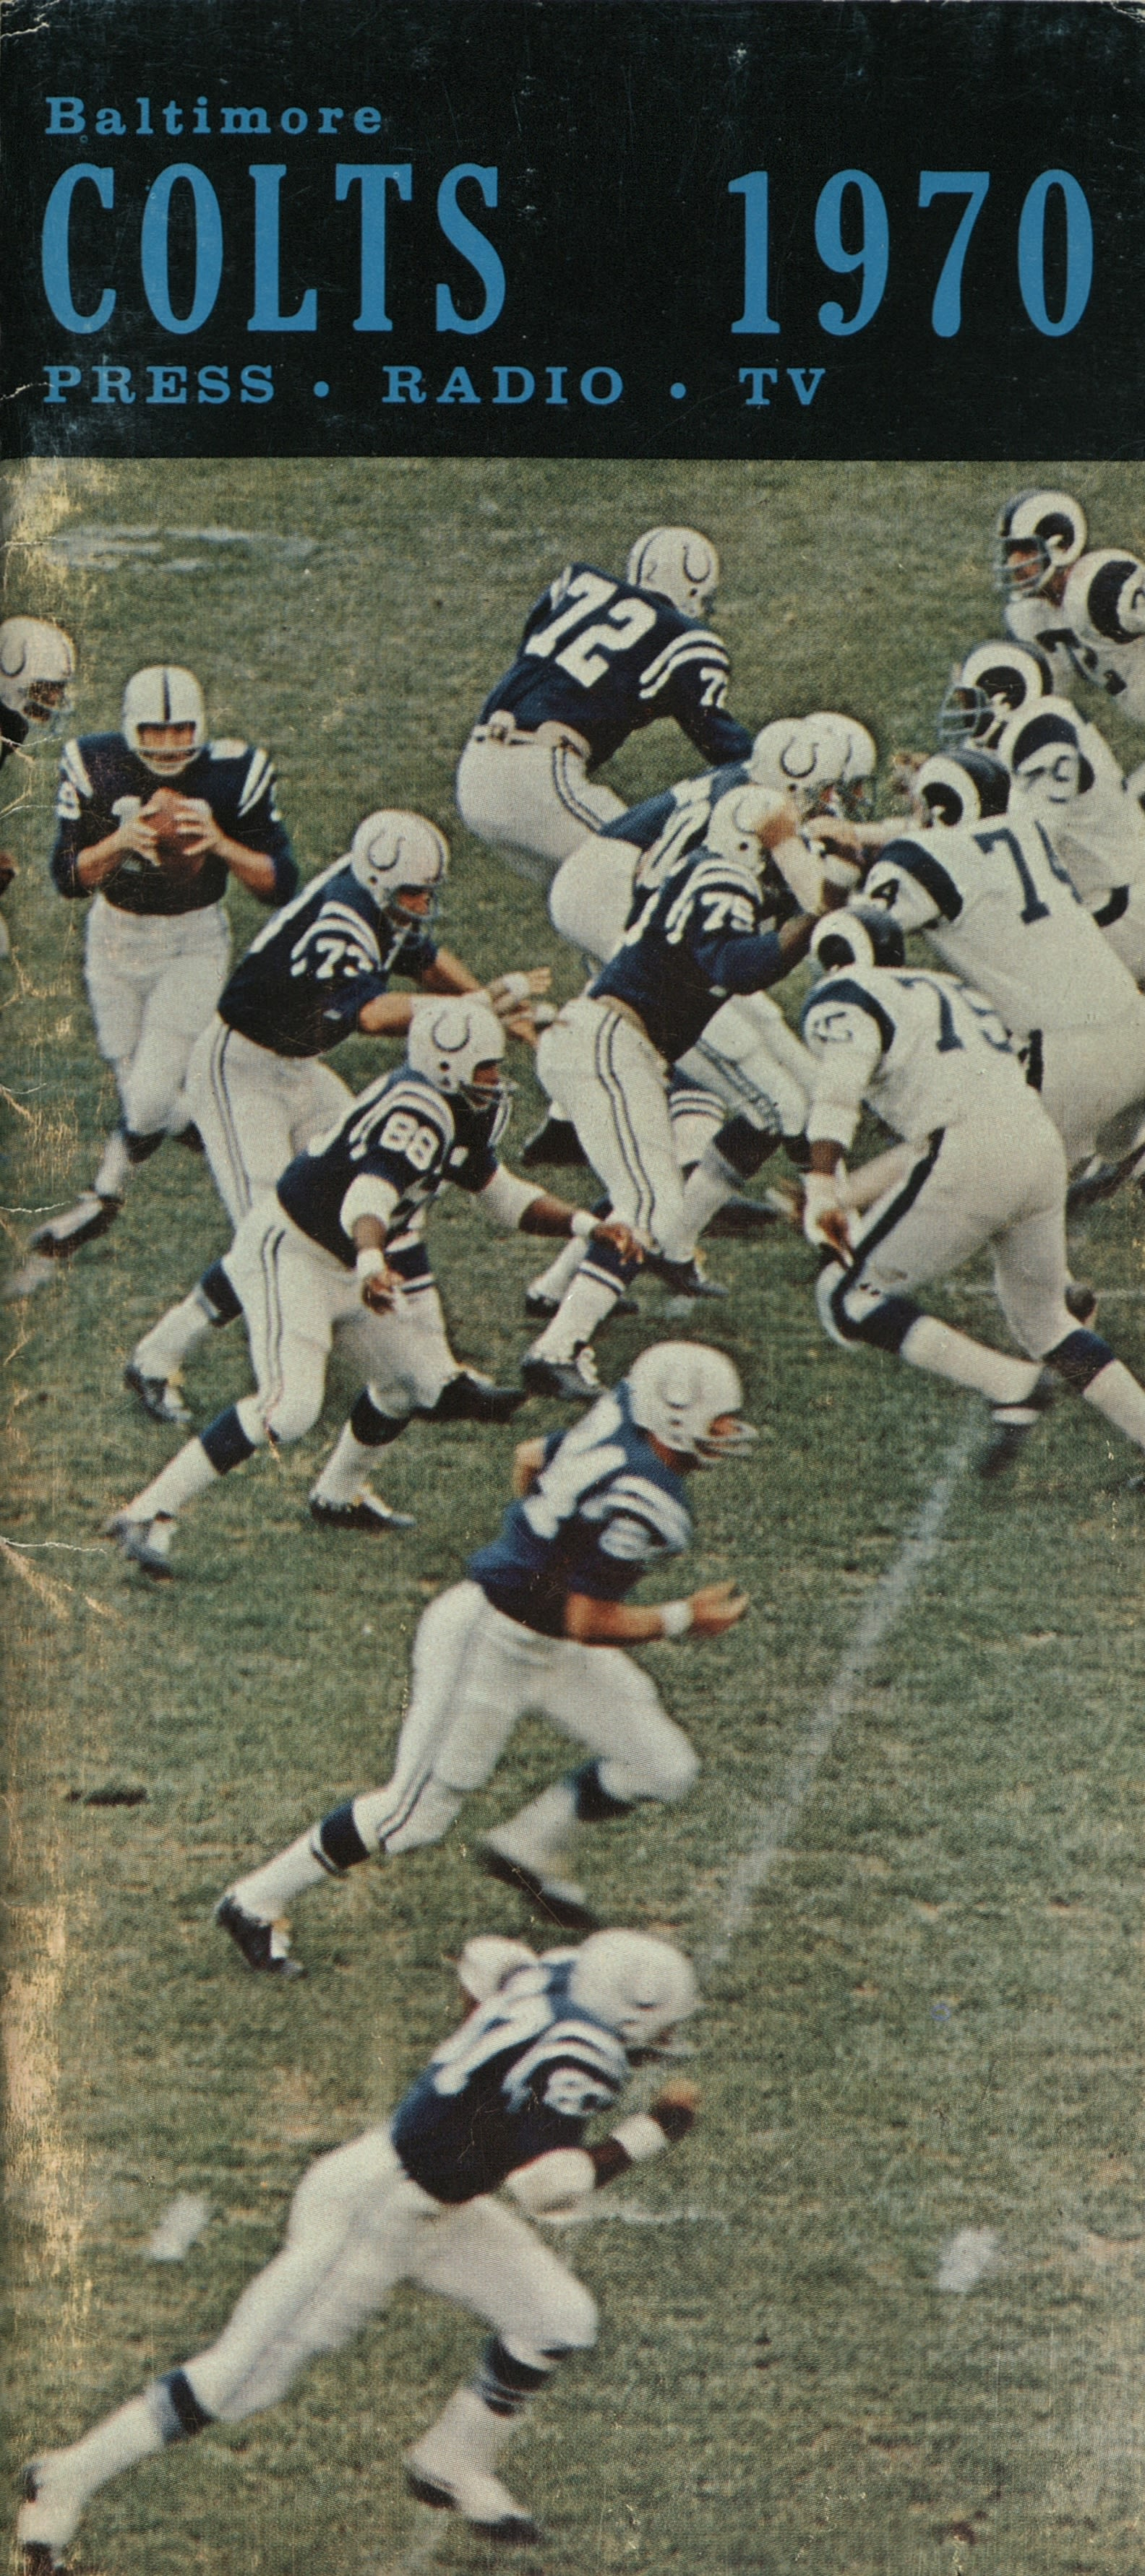 COLTS_1970_Cover